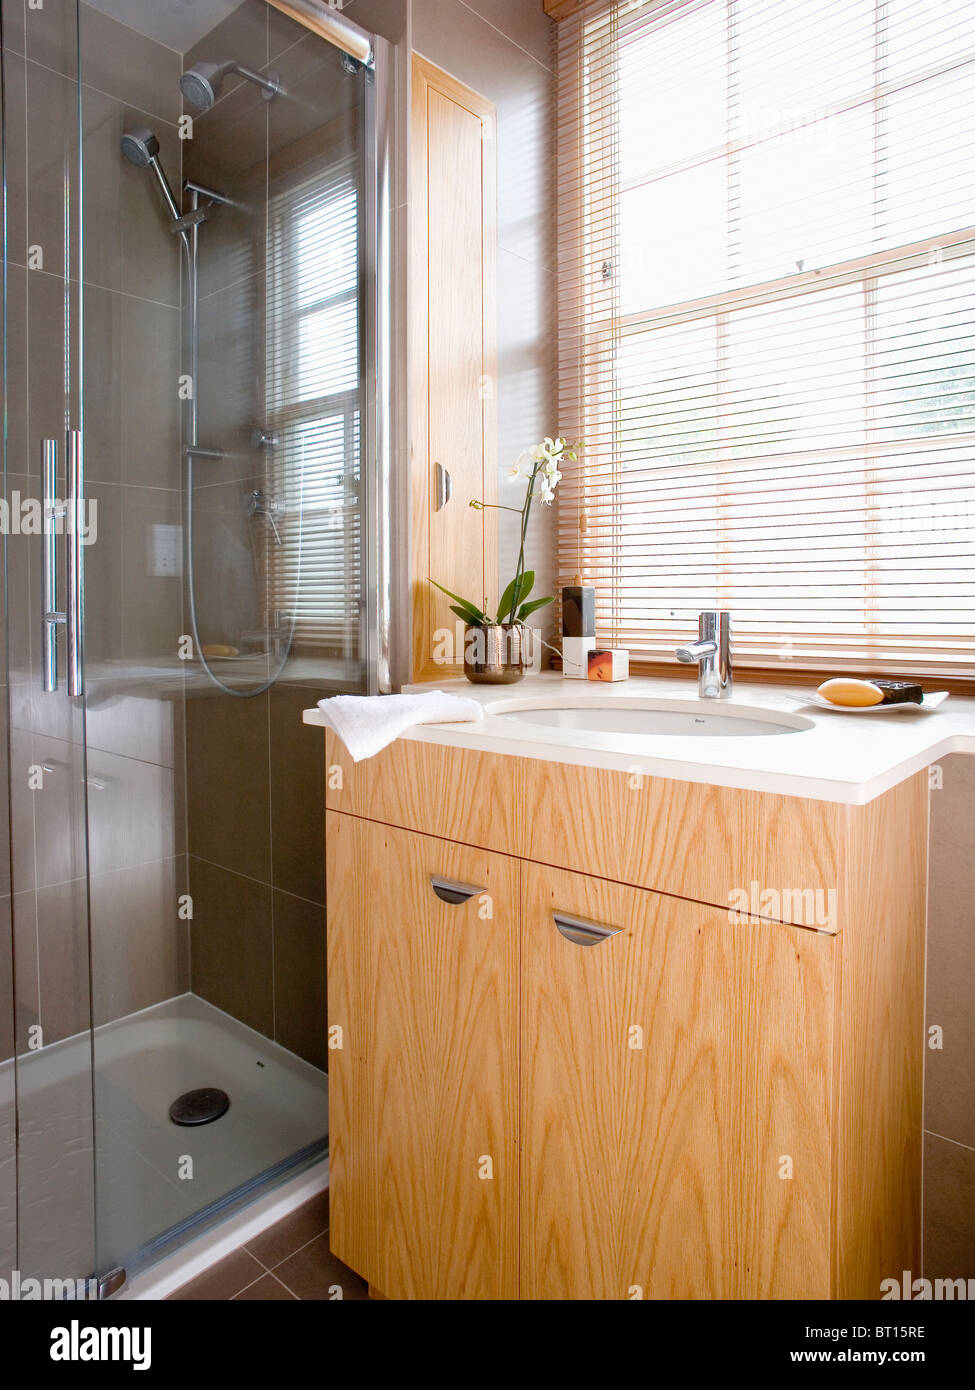 Bathroom Window Above Sink slatted blind on window above white basin in pale wood vanity unit